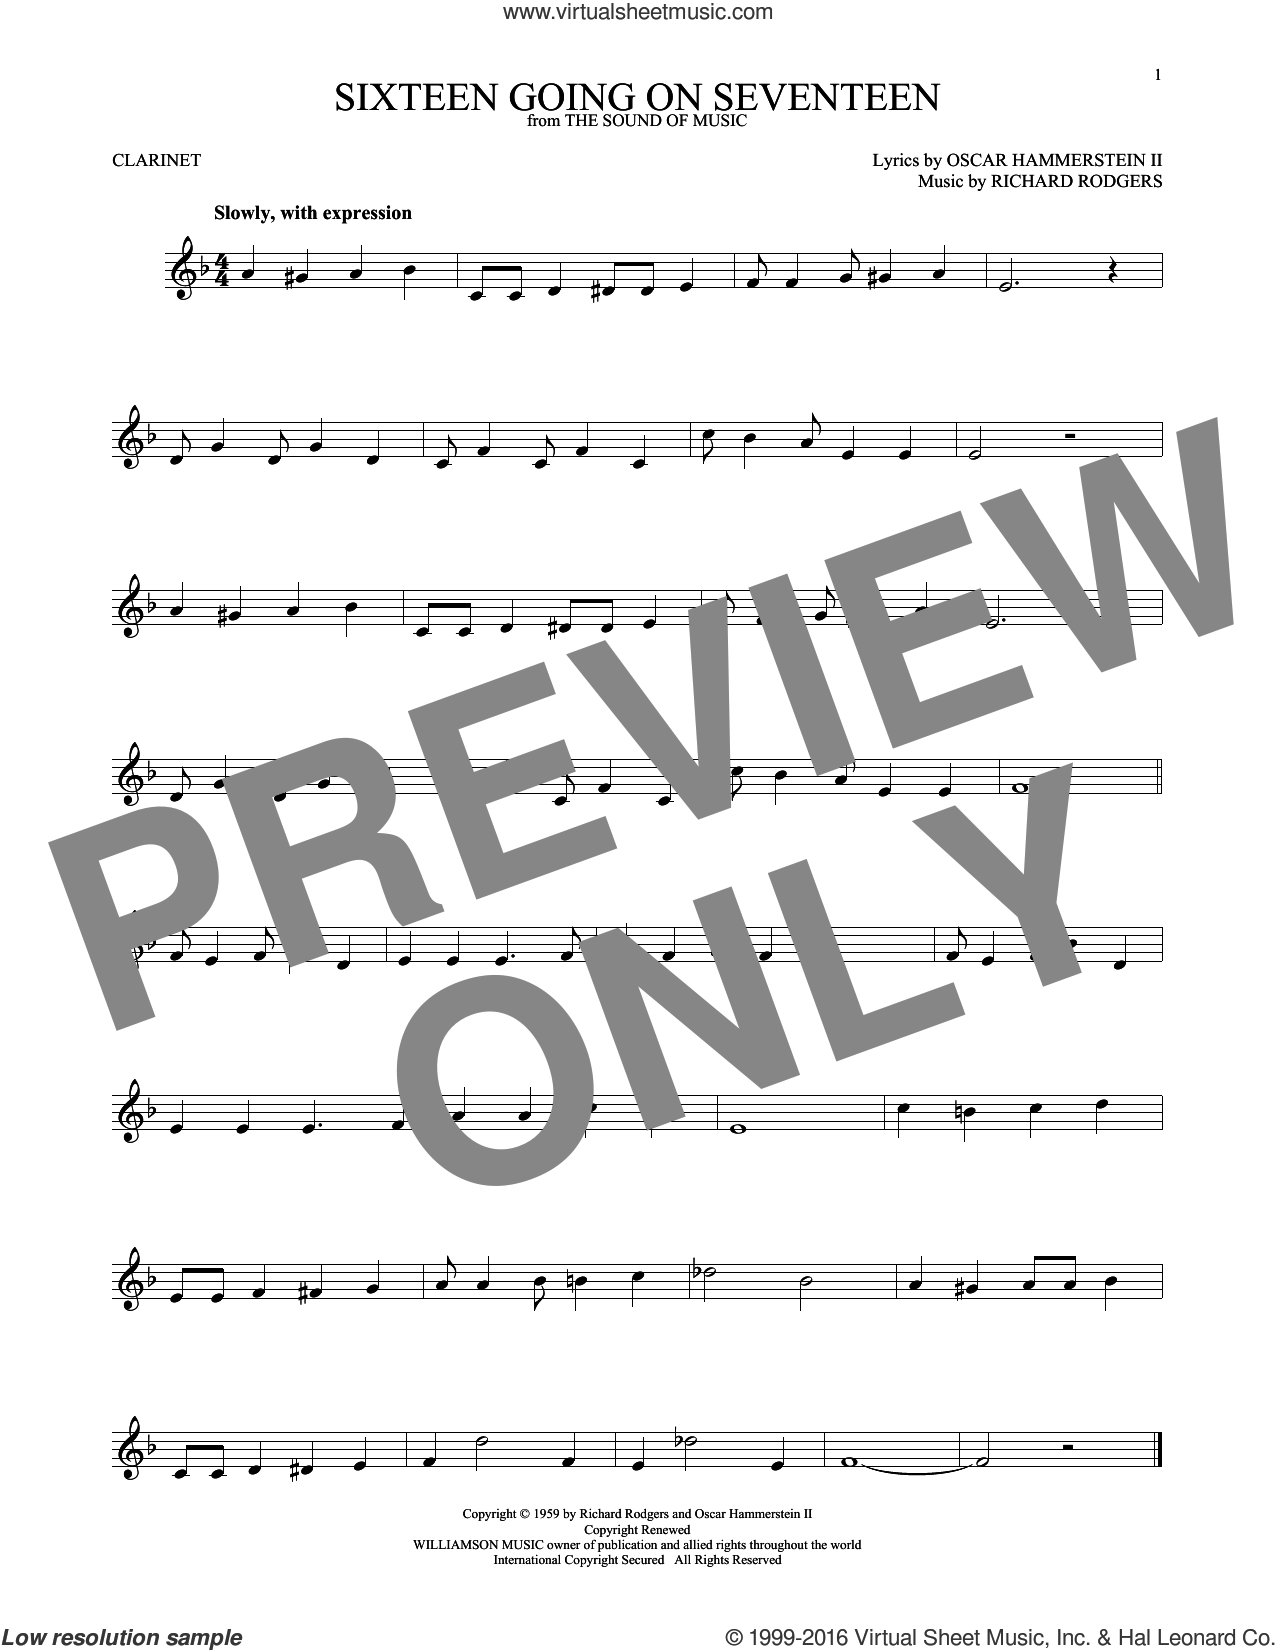 Sixteen Going On Seventeen sheet music for clarinet solo by Rodgers & Hammerstein, Oscar II Hammerstein and Richard Rodgers, intermediate skill level